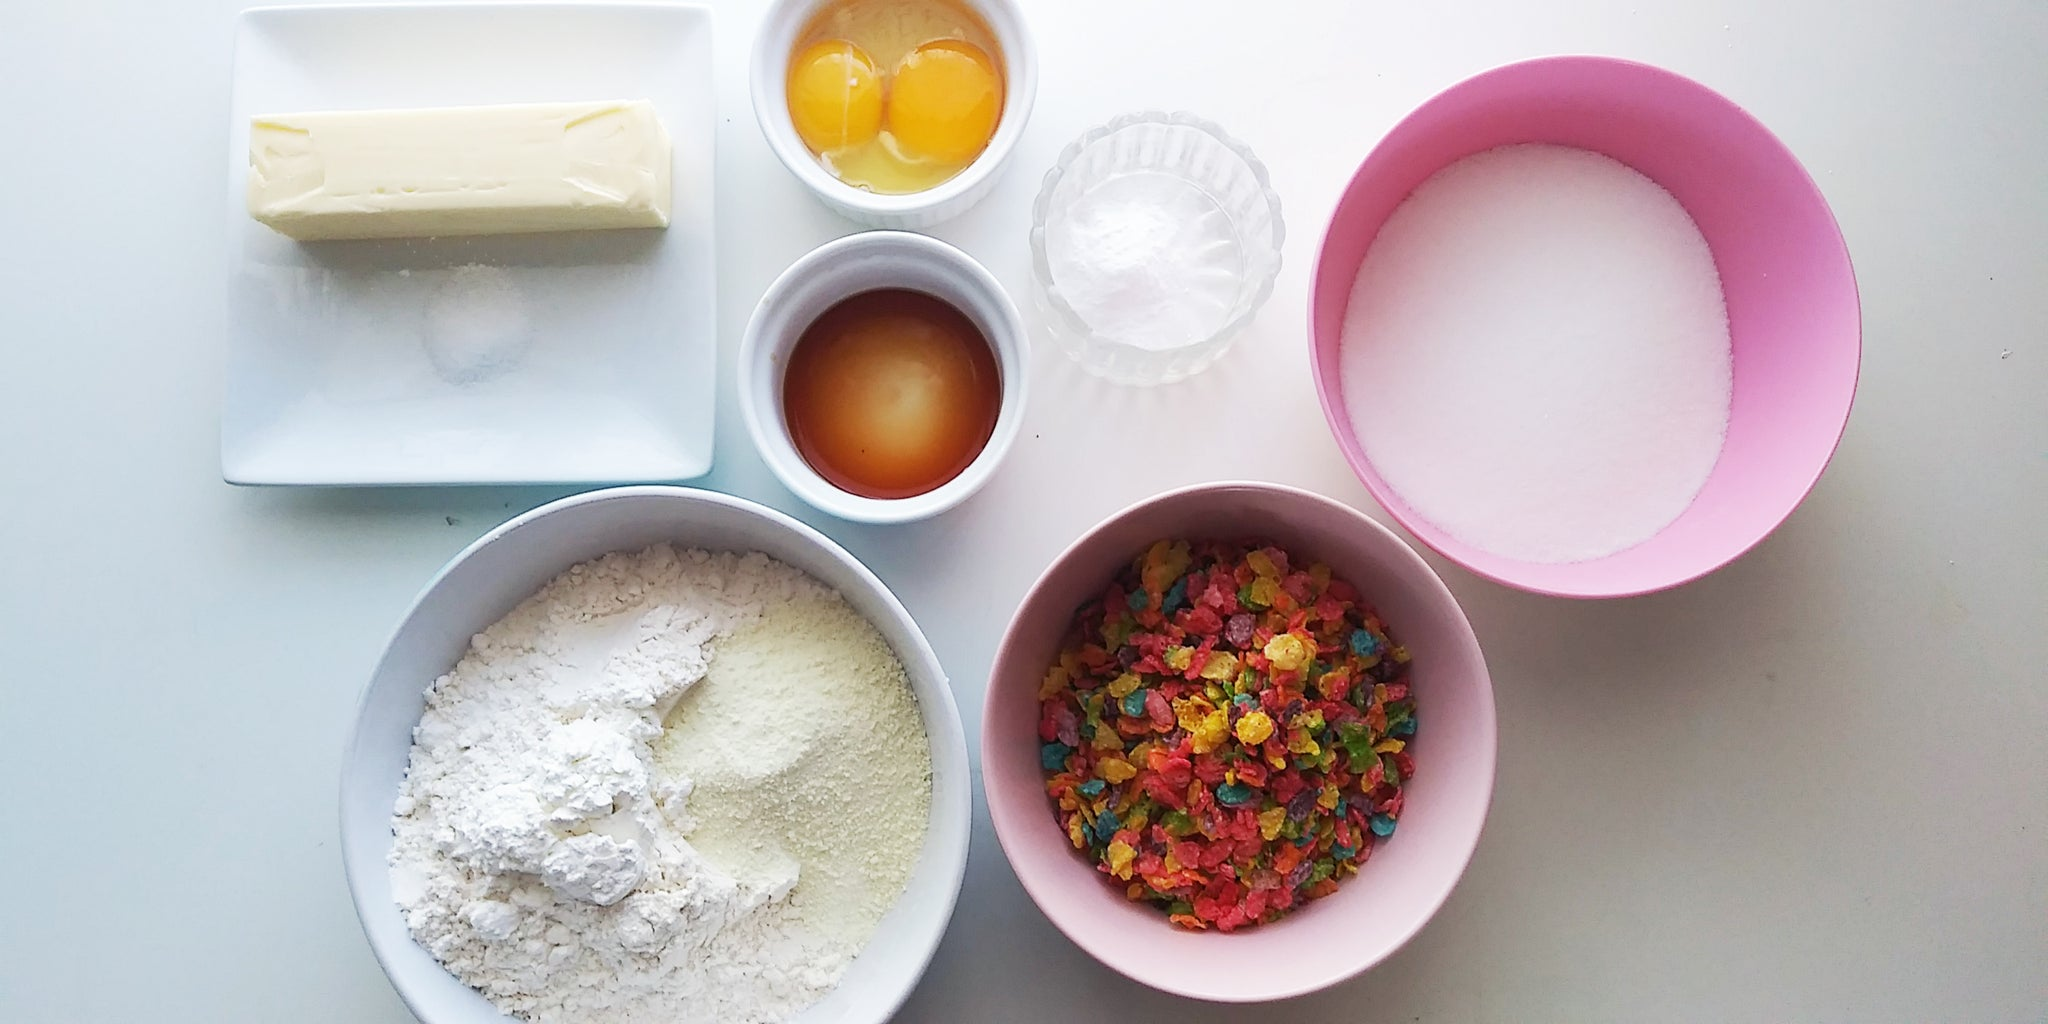 Ingredients for the Fruity Pebbles Cookie